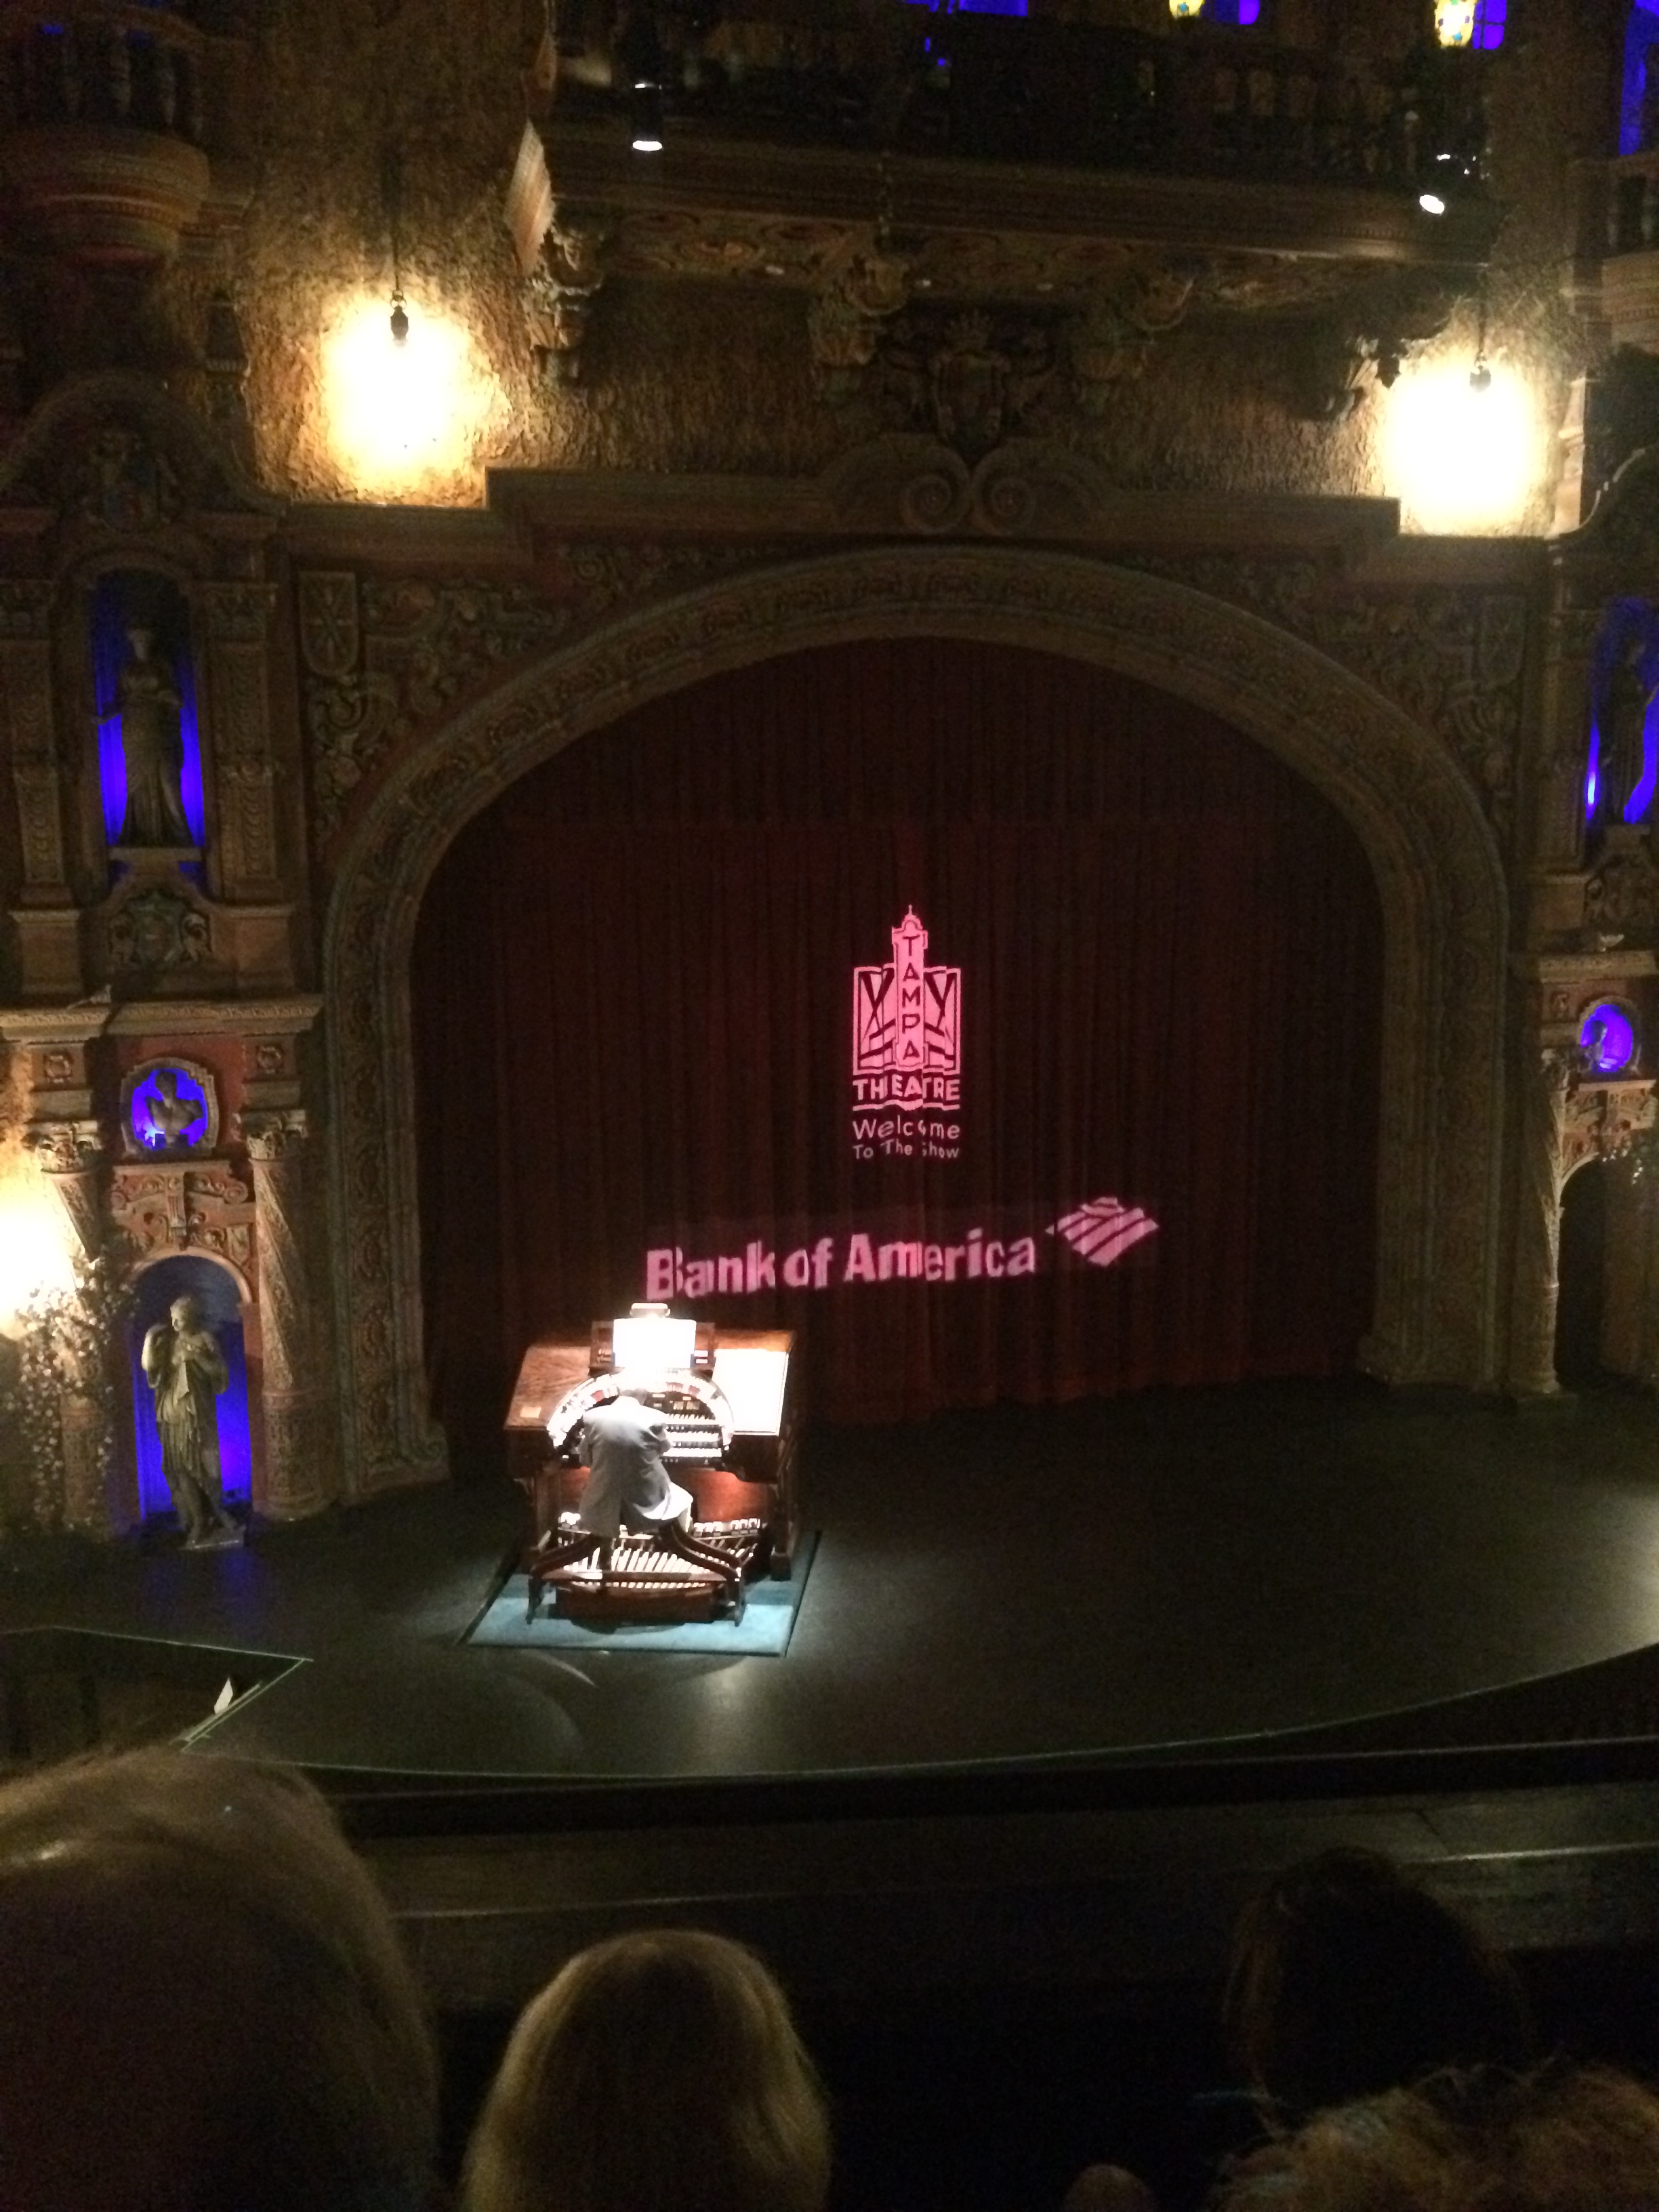 The Organ came right out of the stage!